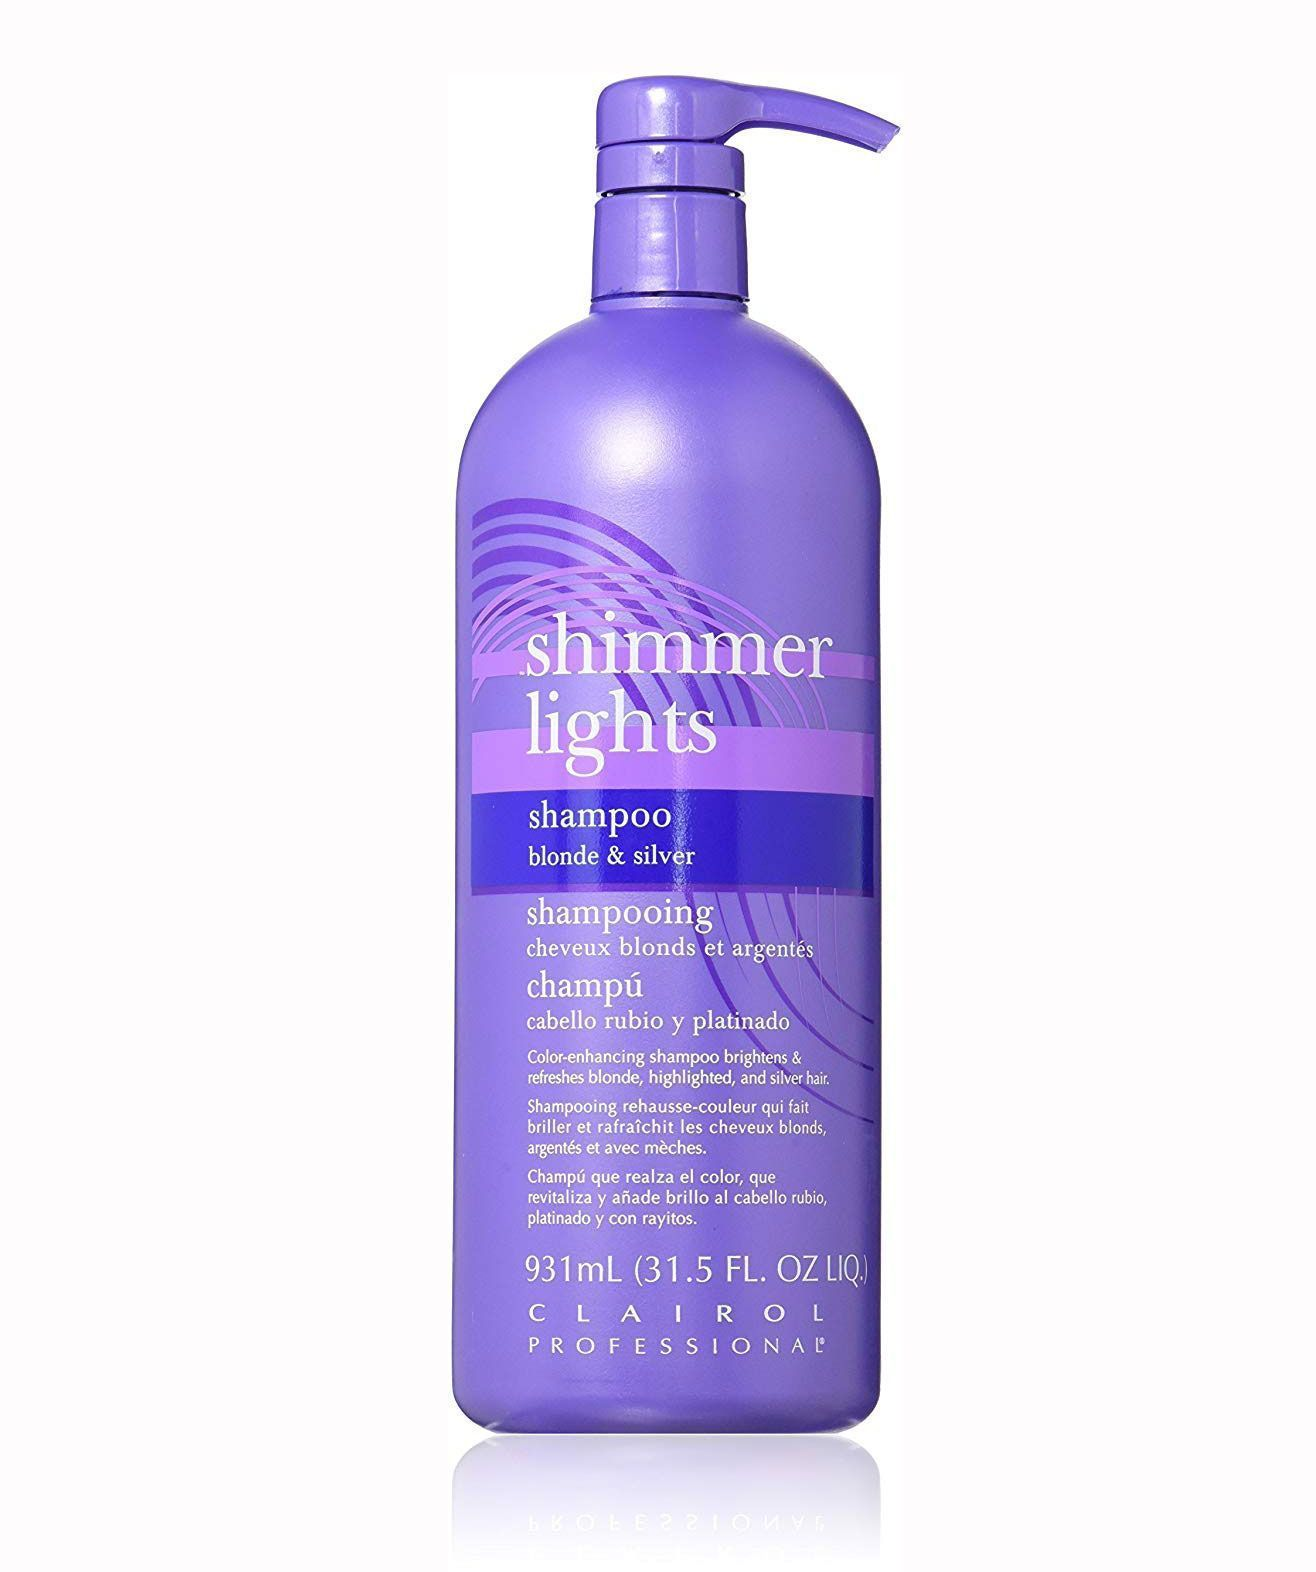 Blondes: You Need These Brightening Shampoos in Your Summer Hair Care Lineup #purpleshampoo STYLECASTER | Purple shampoo | brightening shampoo | shampoo for blonde hair | shampoo for colored hair | best purple shampoos #purpleshampoo Blondes: You Need These Brightening Shampoos in Your Summer Hair Care Lineup #purpleshampoo STYLECASTER | Purple shampoo | brightening shampoo | shampoo for blonde hair | shampoo for colored hair | best purple shampoos #purpleshampoo